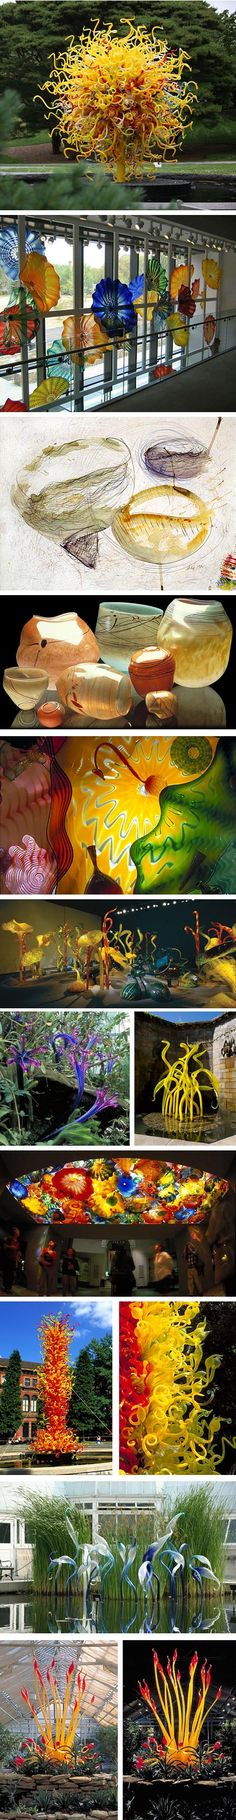 Dale Chihuly- One of my favorite glass artists! Art Of Glass, Blown Glass Art, Glass Artwork, Dale Chihuly, Murano, Glass Design, Amazing Art, Awesome, Installation Art